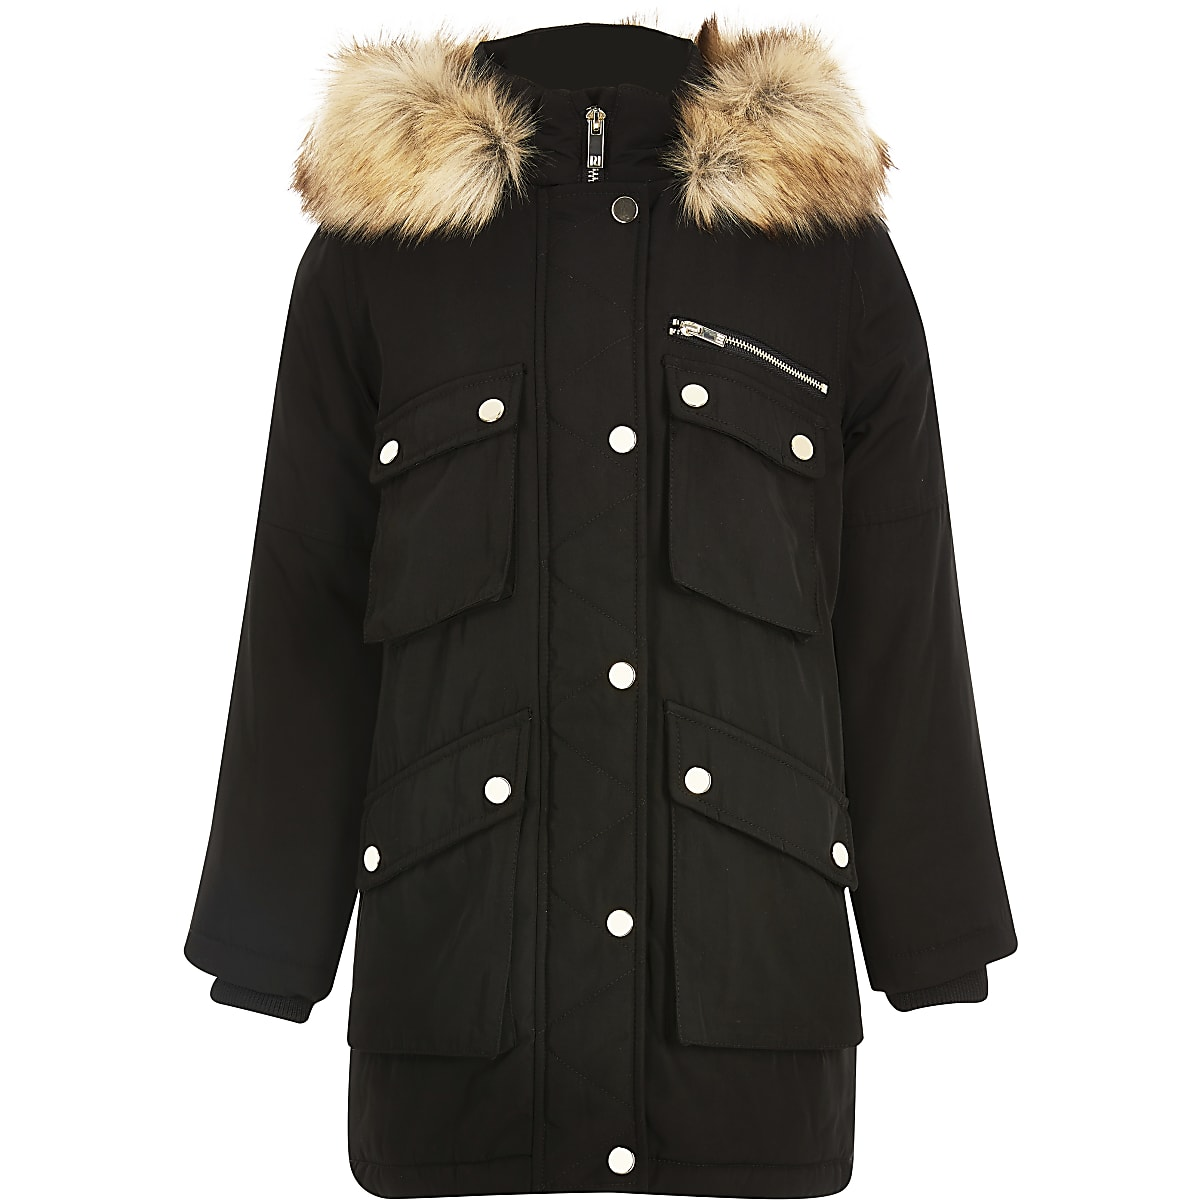 Girls black faux fur hooded parka coat